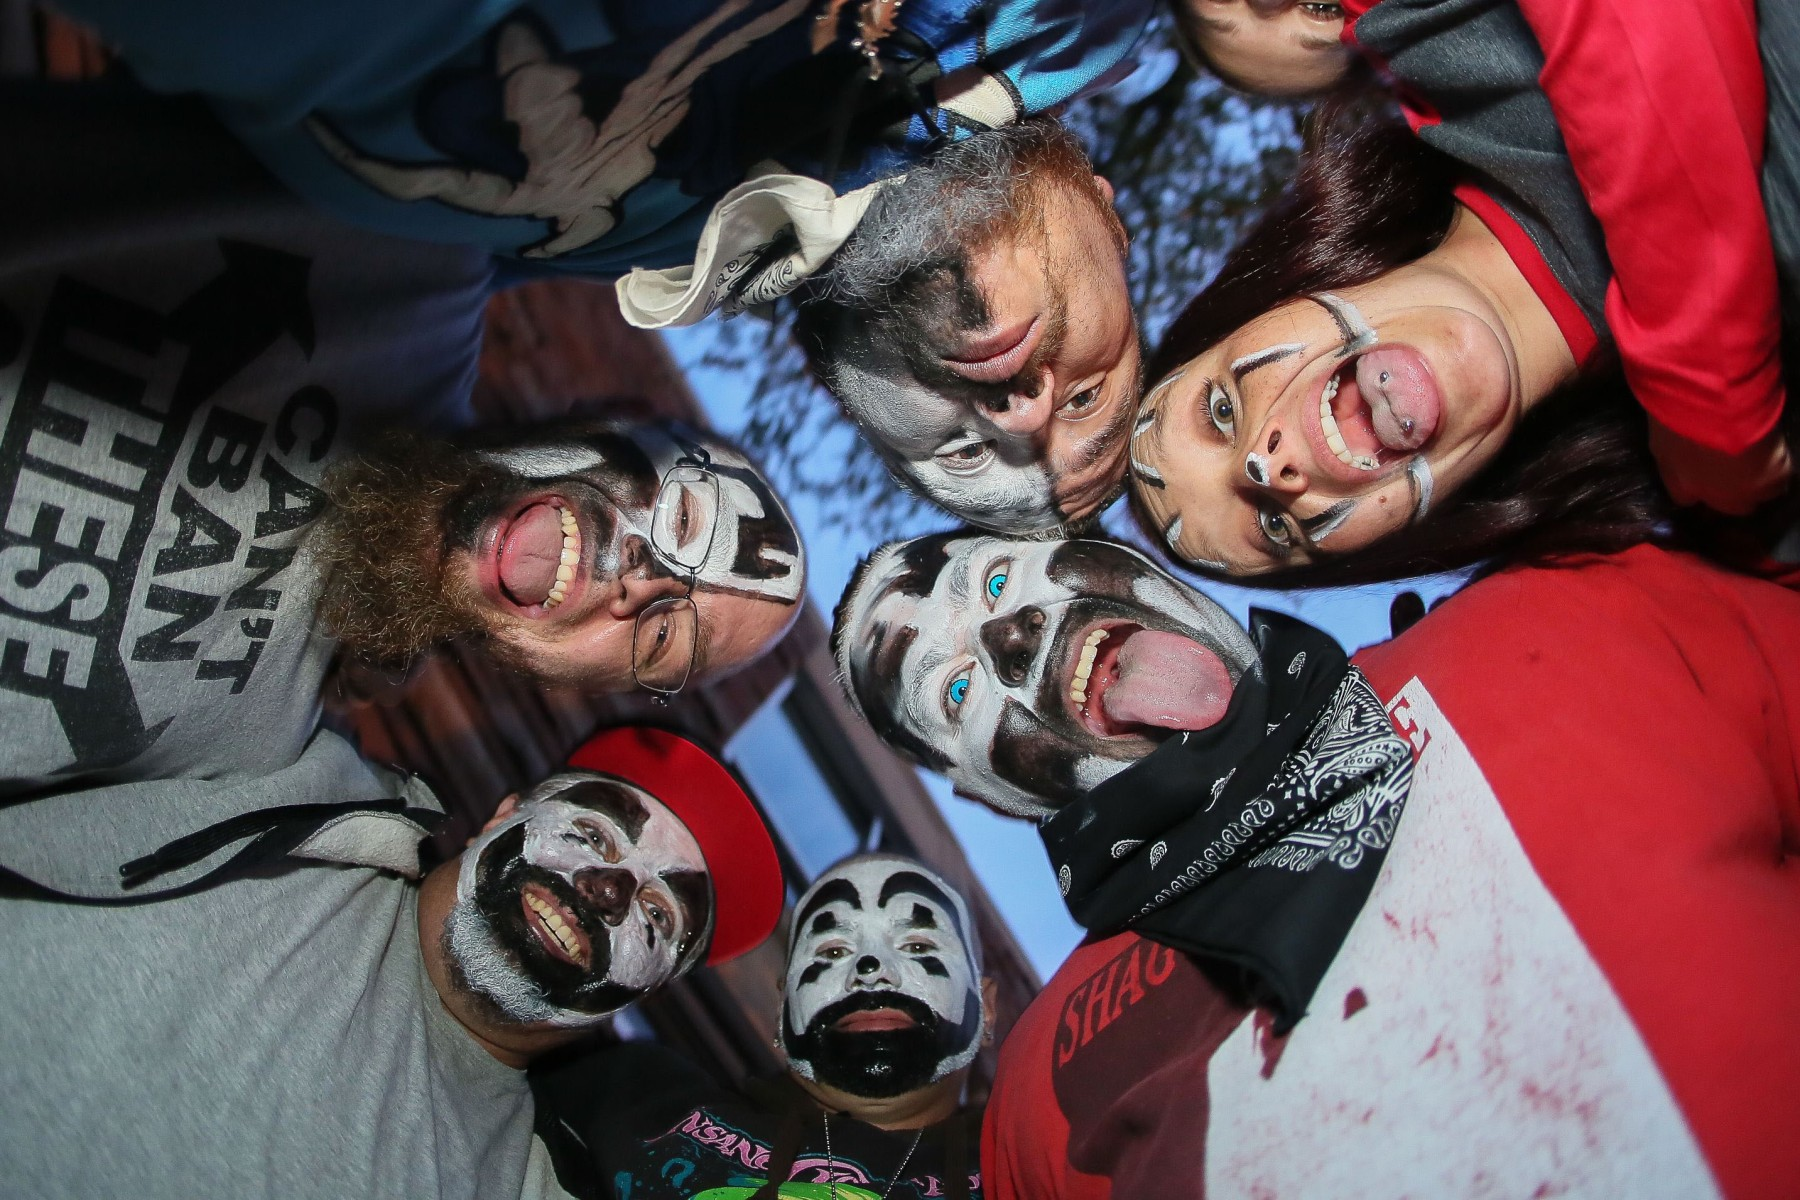 Juggalo's at Insane Clown Possee ConcertInsane Clown Posse in concert at the Boulder Theater, USA - 25 Sep 2017